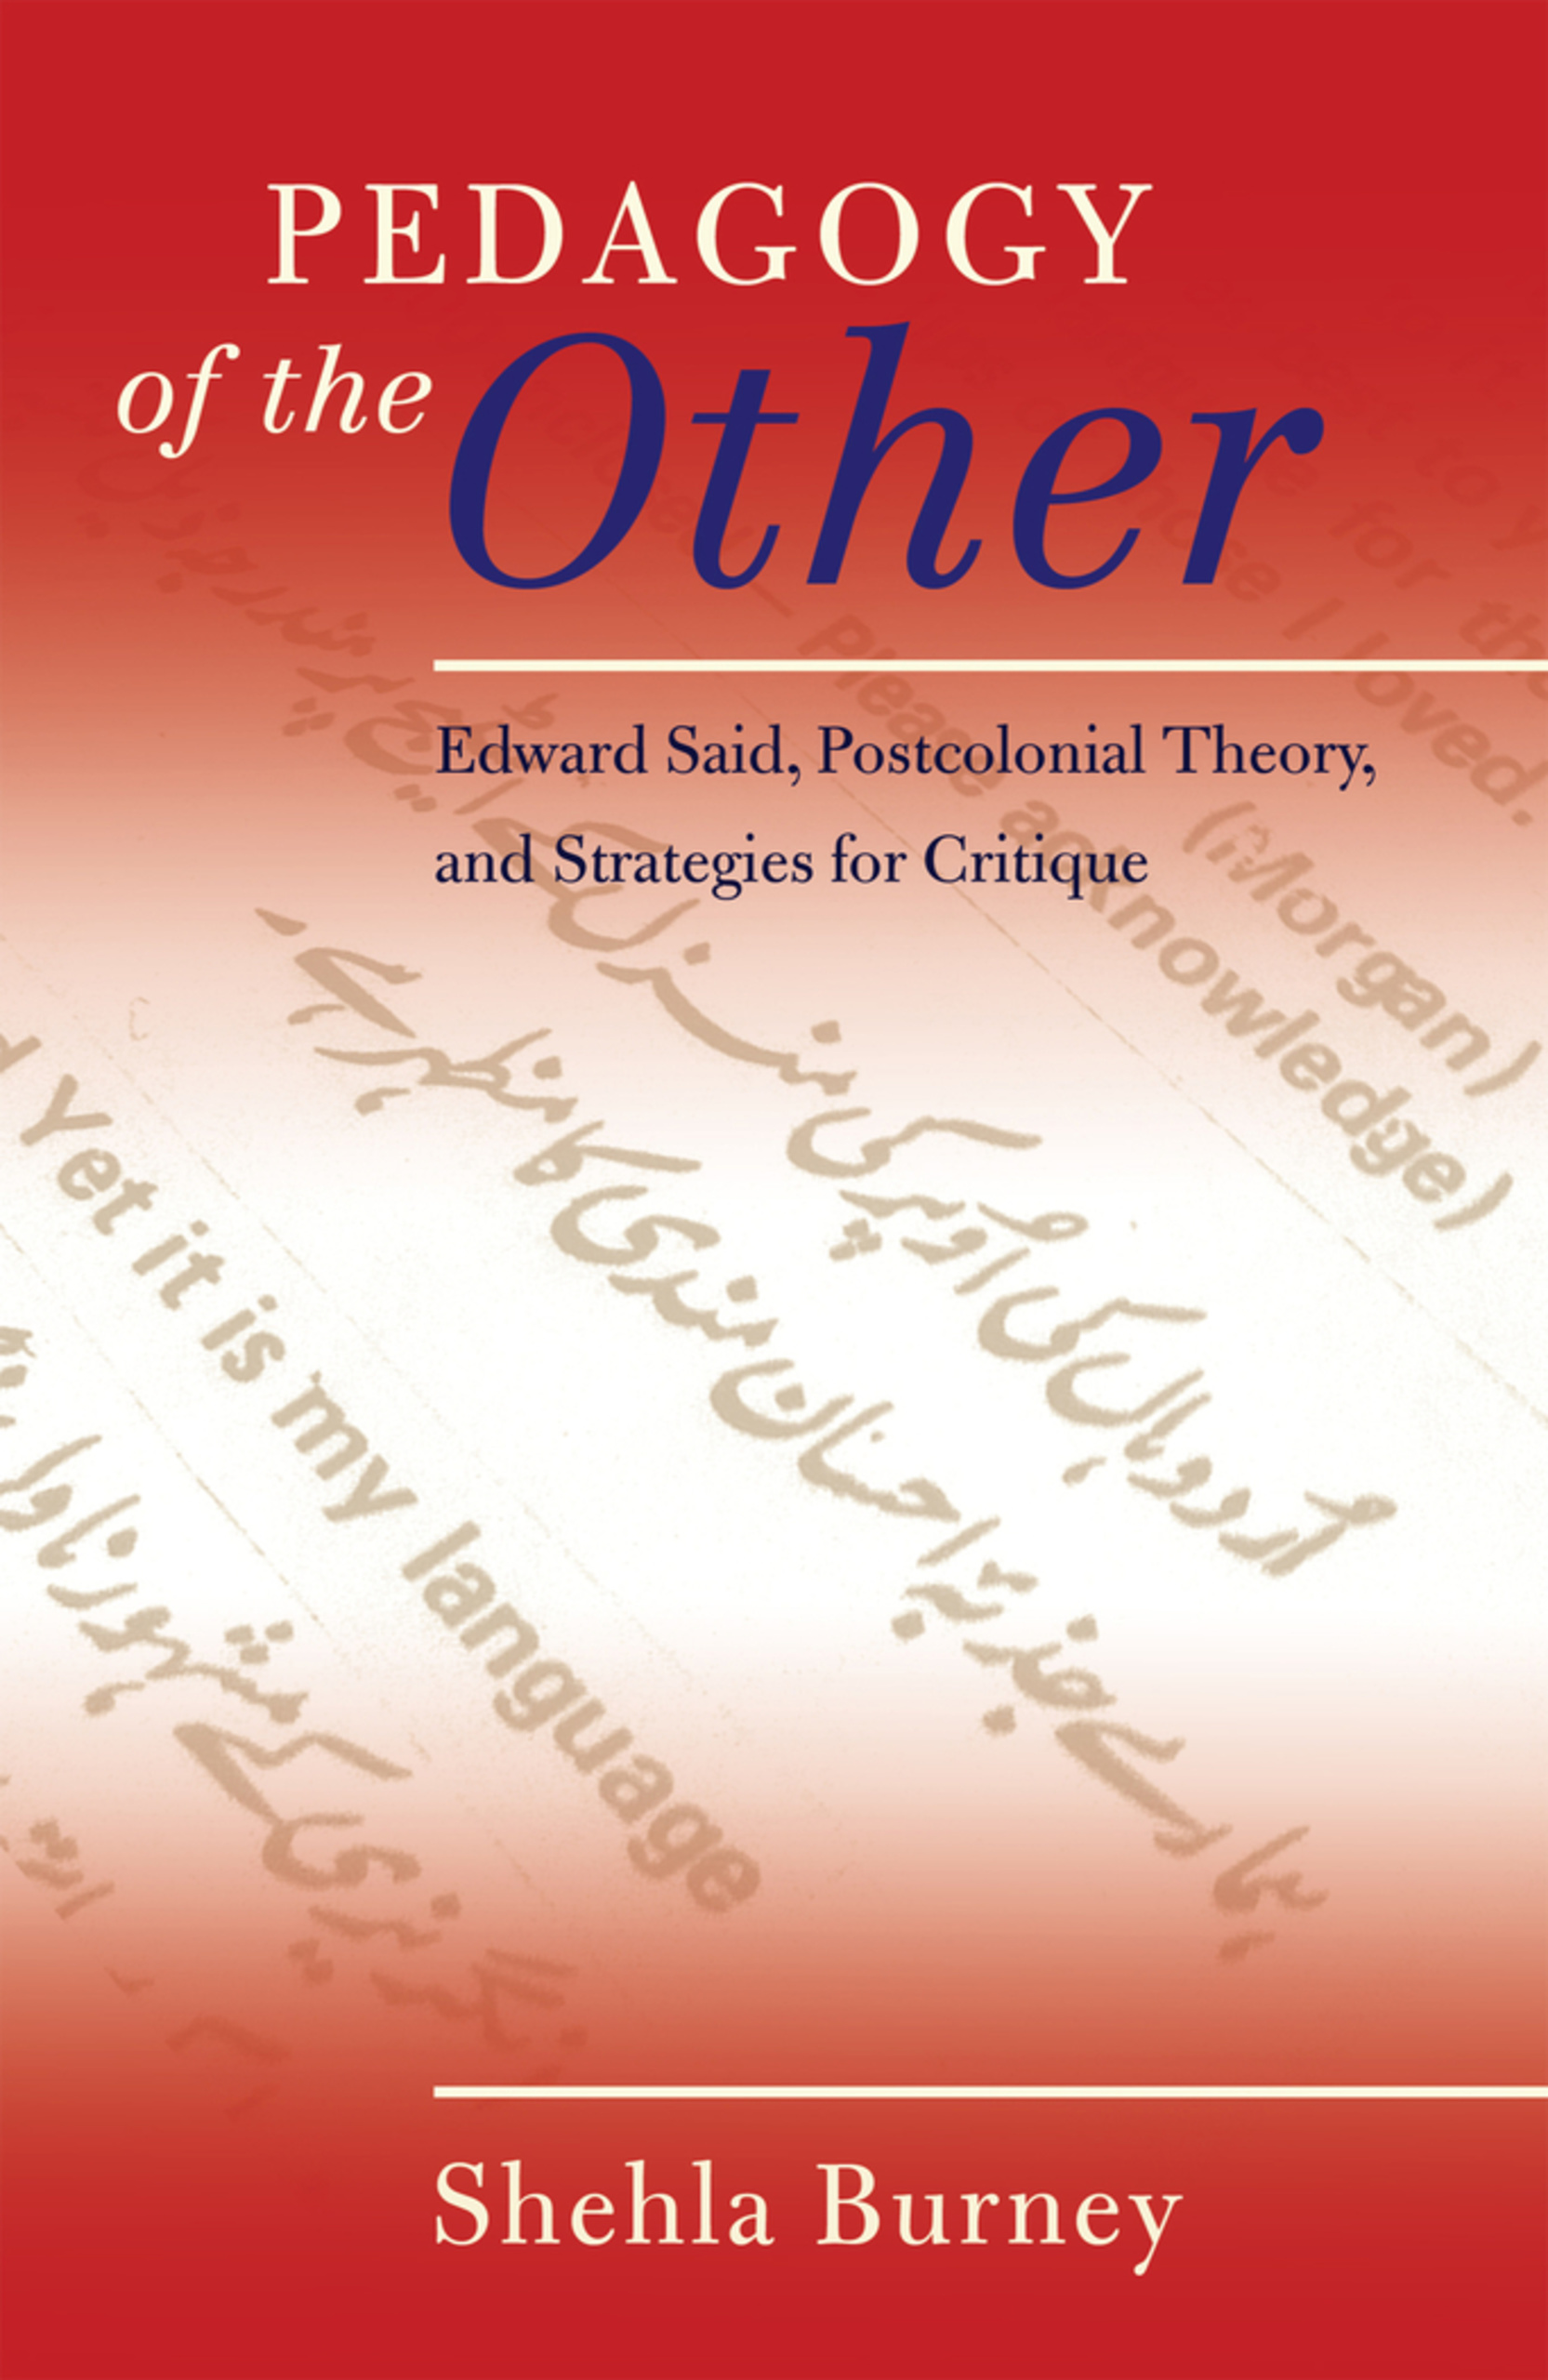 Title: Pedagogy of the Other